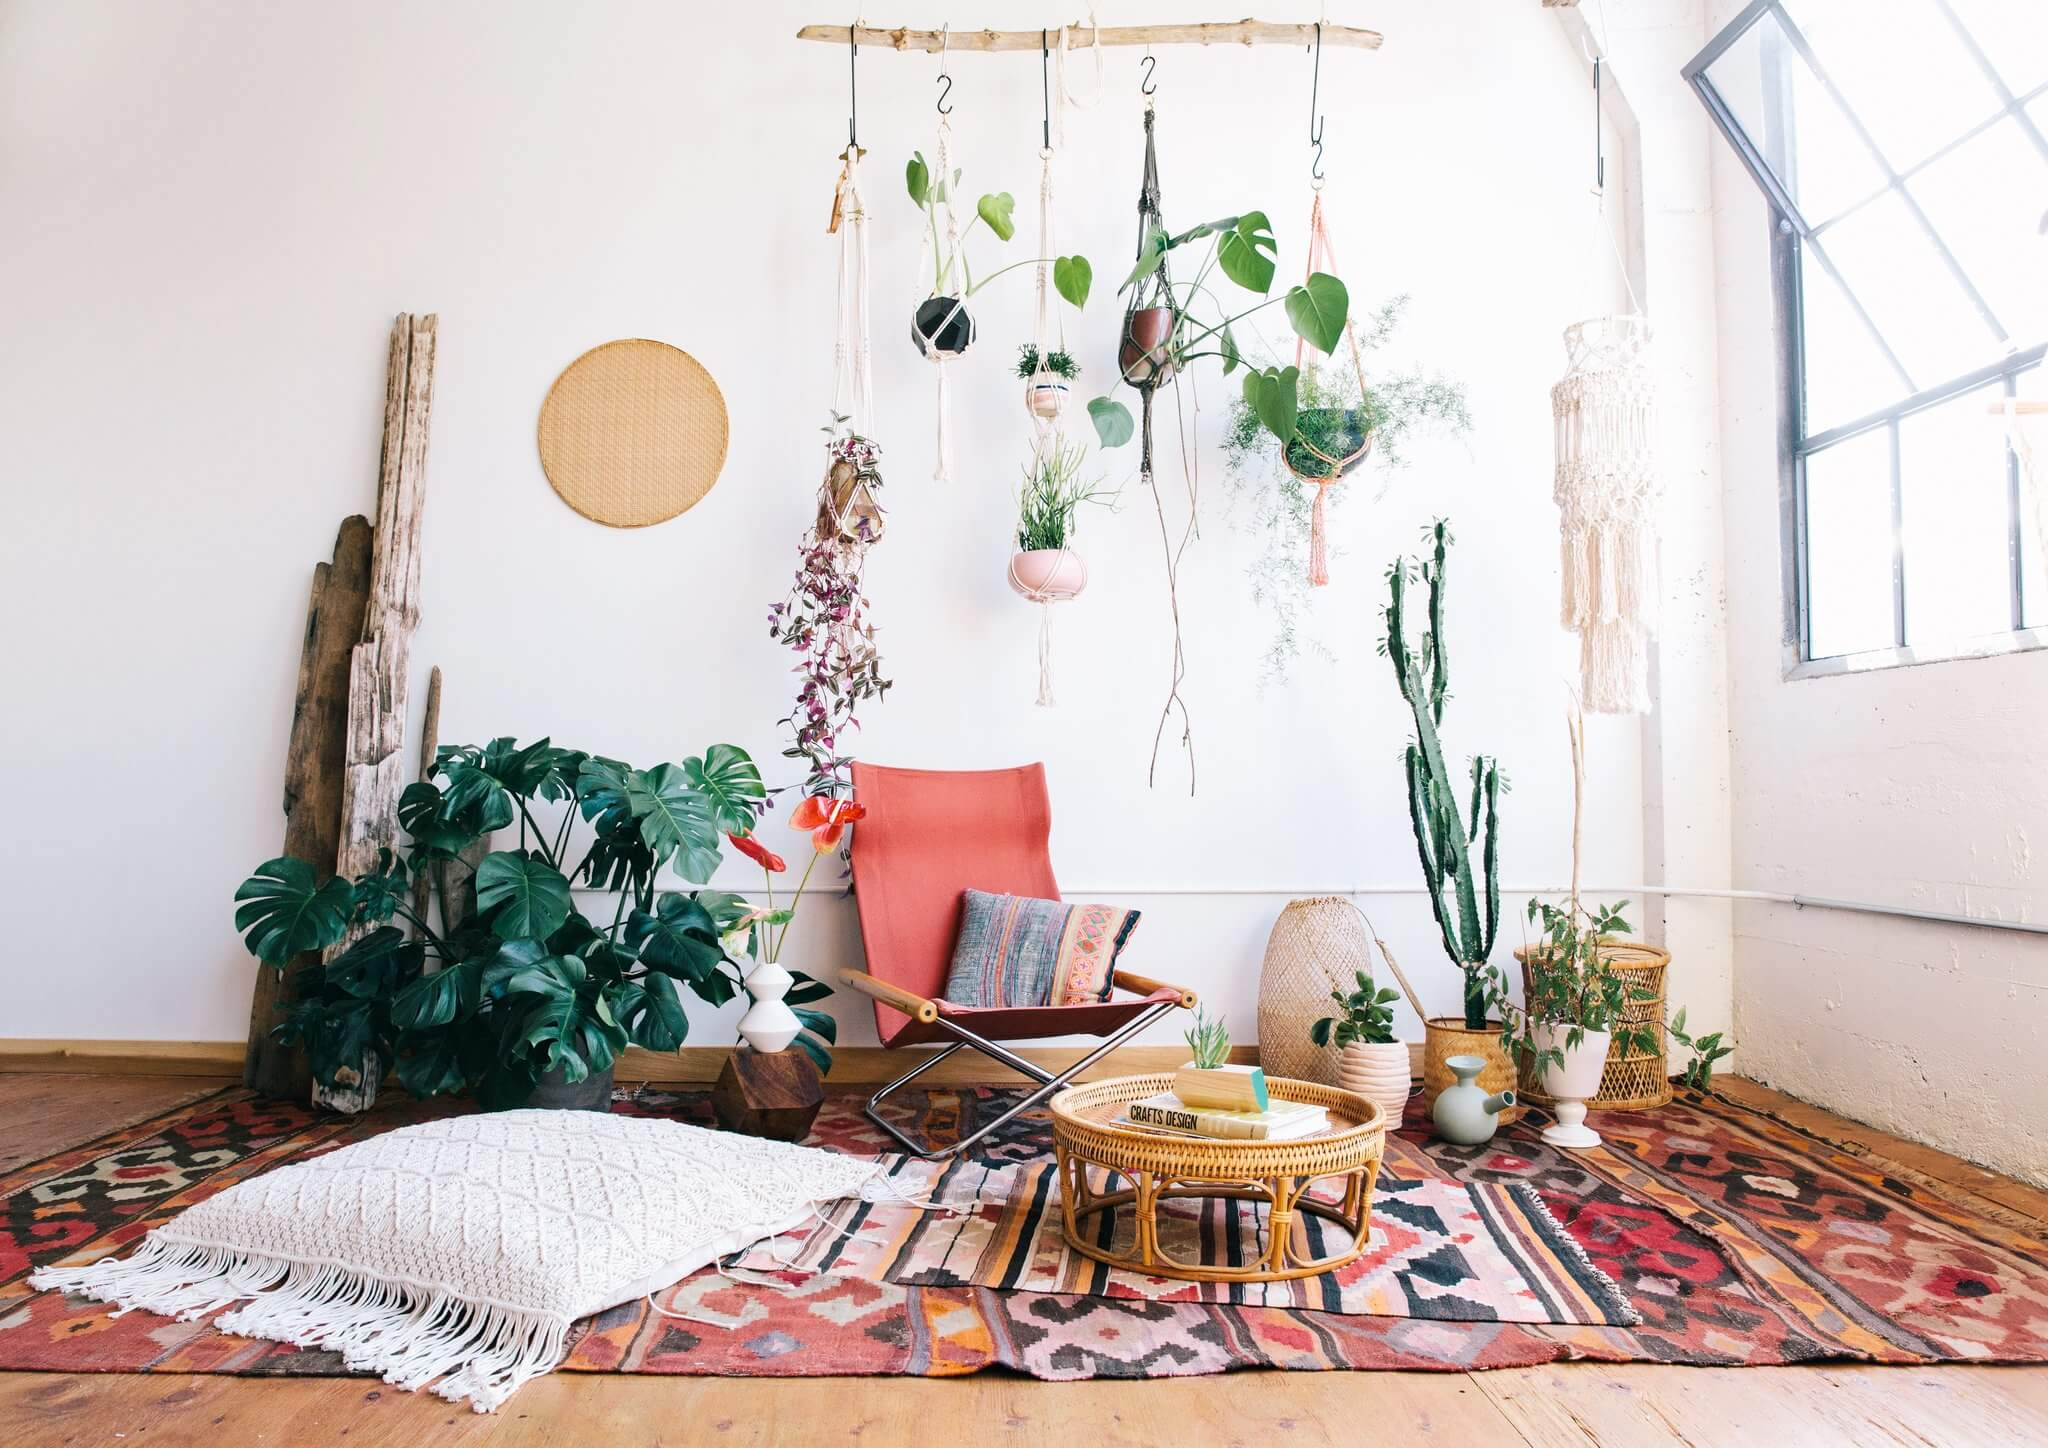 Ideas y consejos estilo decoracion boho o bohemia Dimension